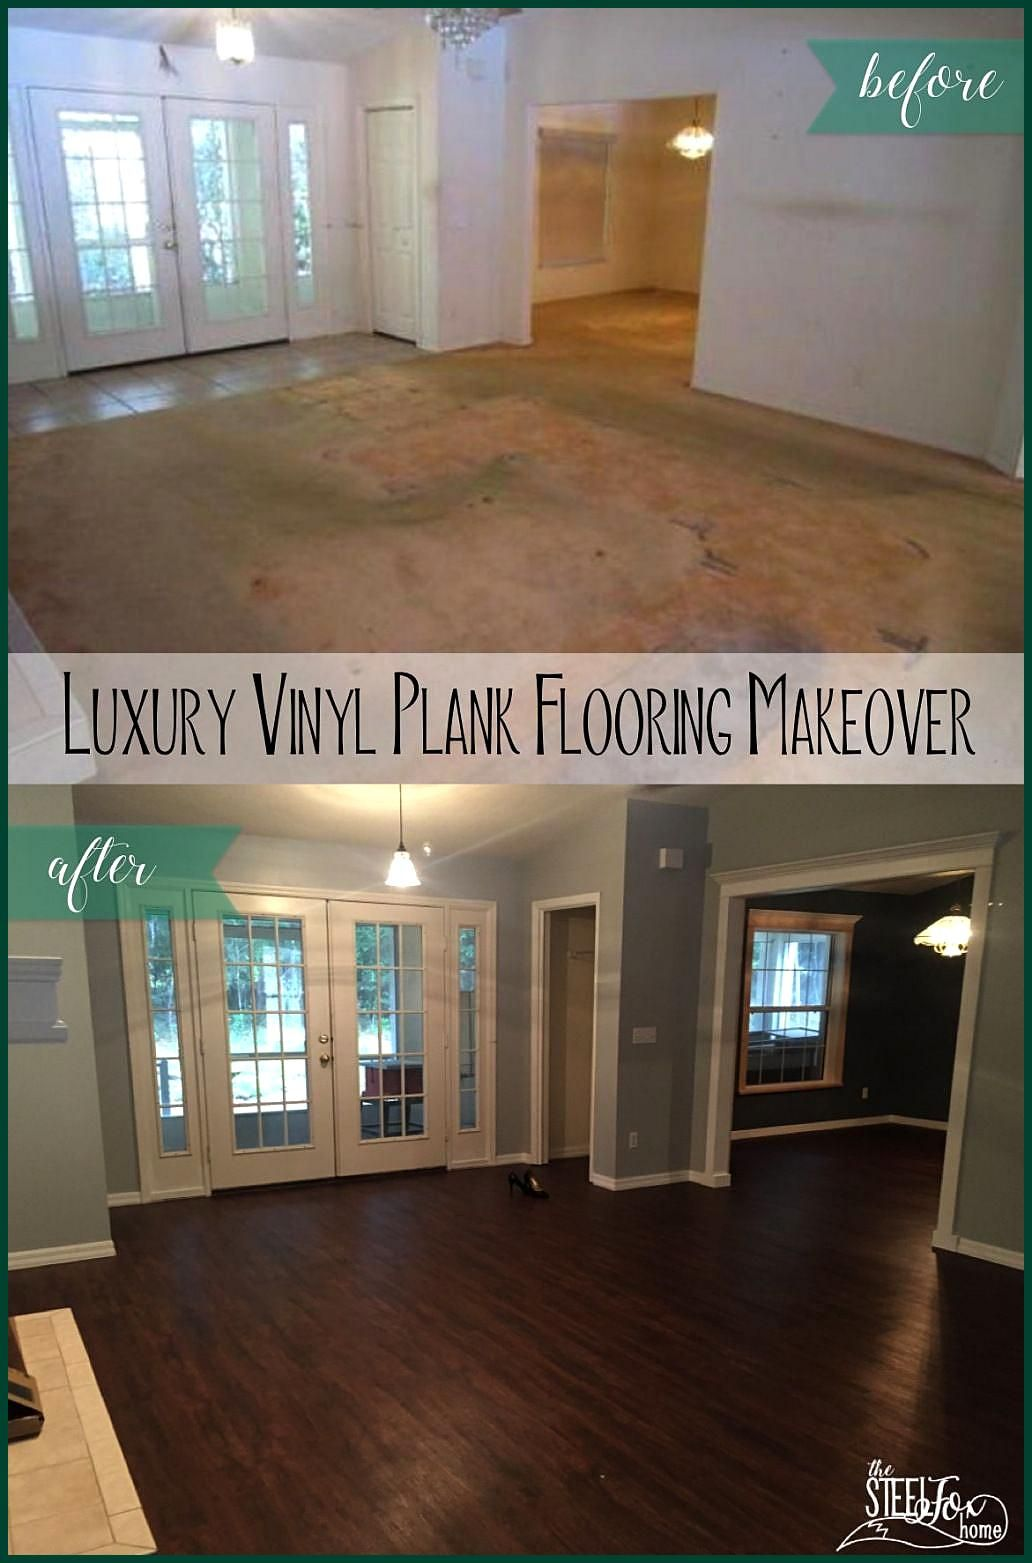 Luxury Vinyl Plank Wood Flooring whole house makeover Why